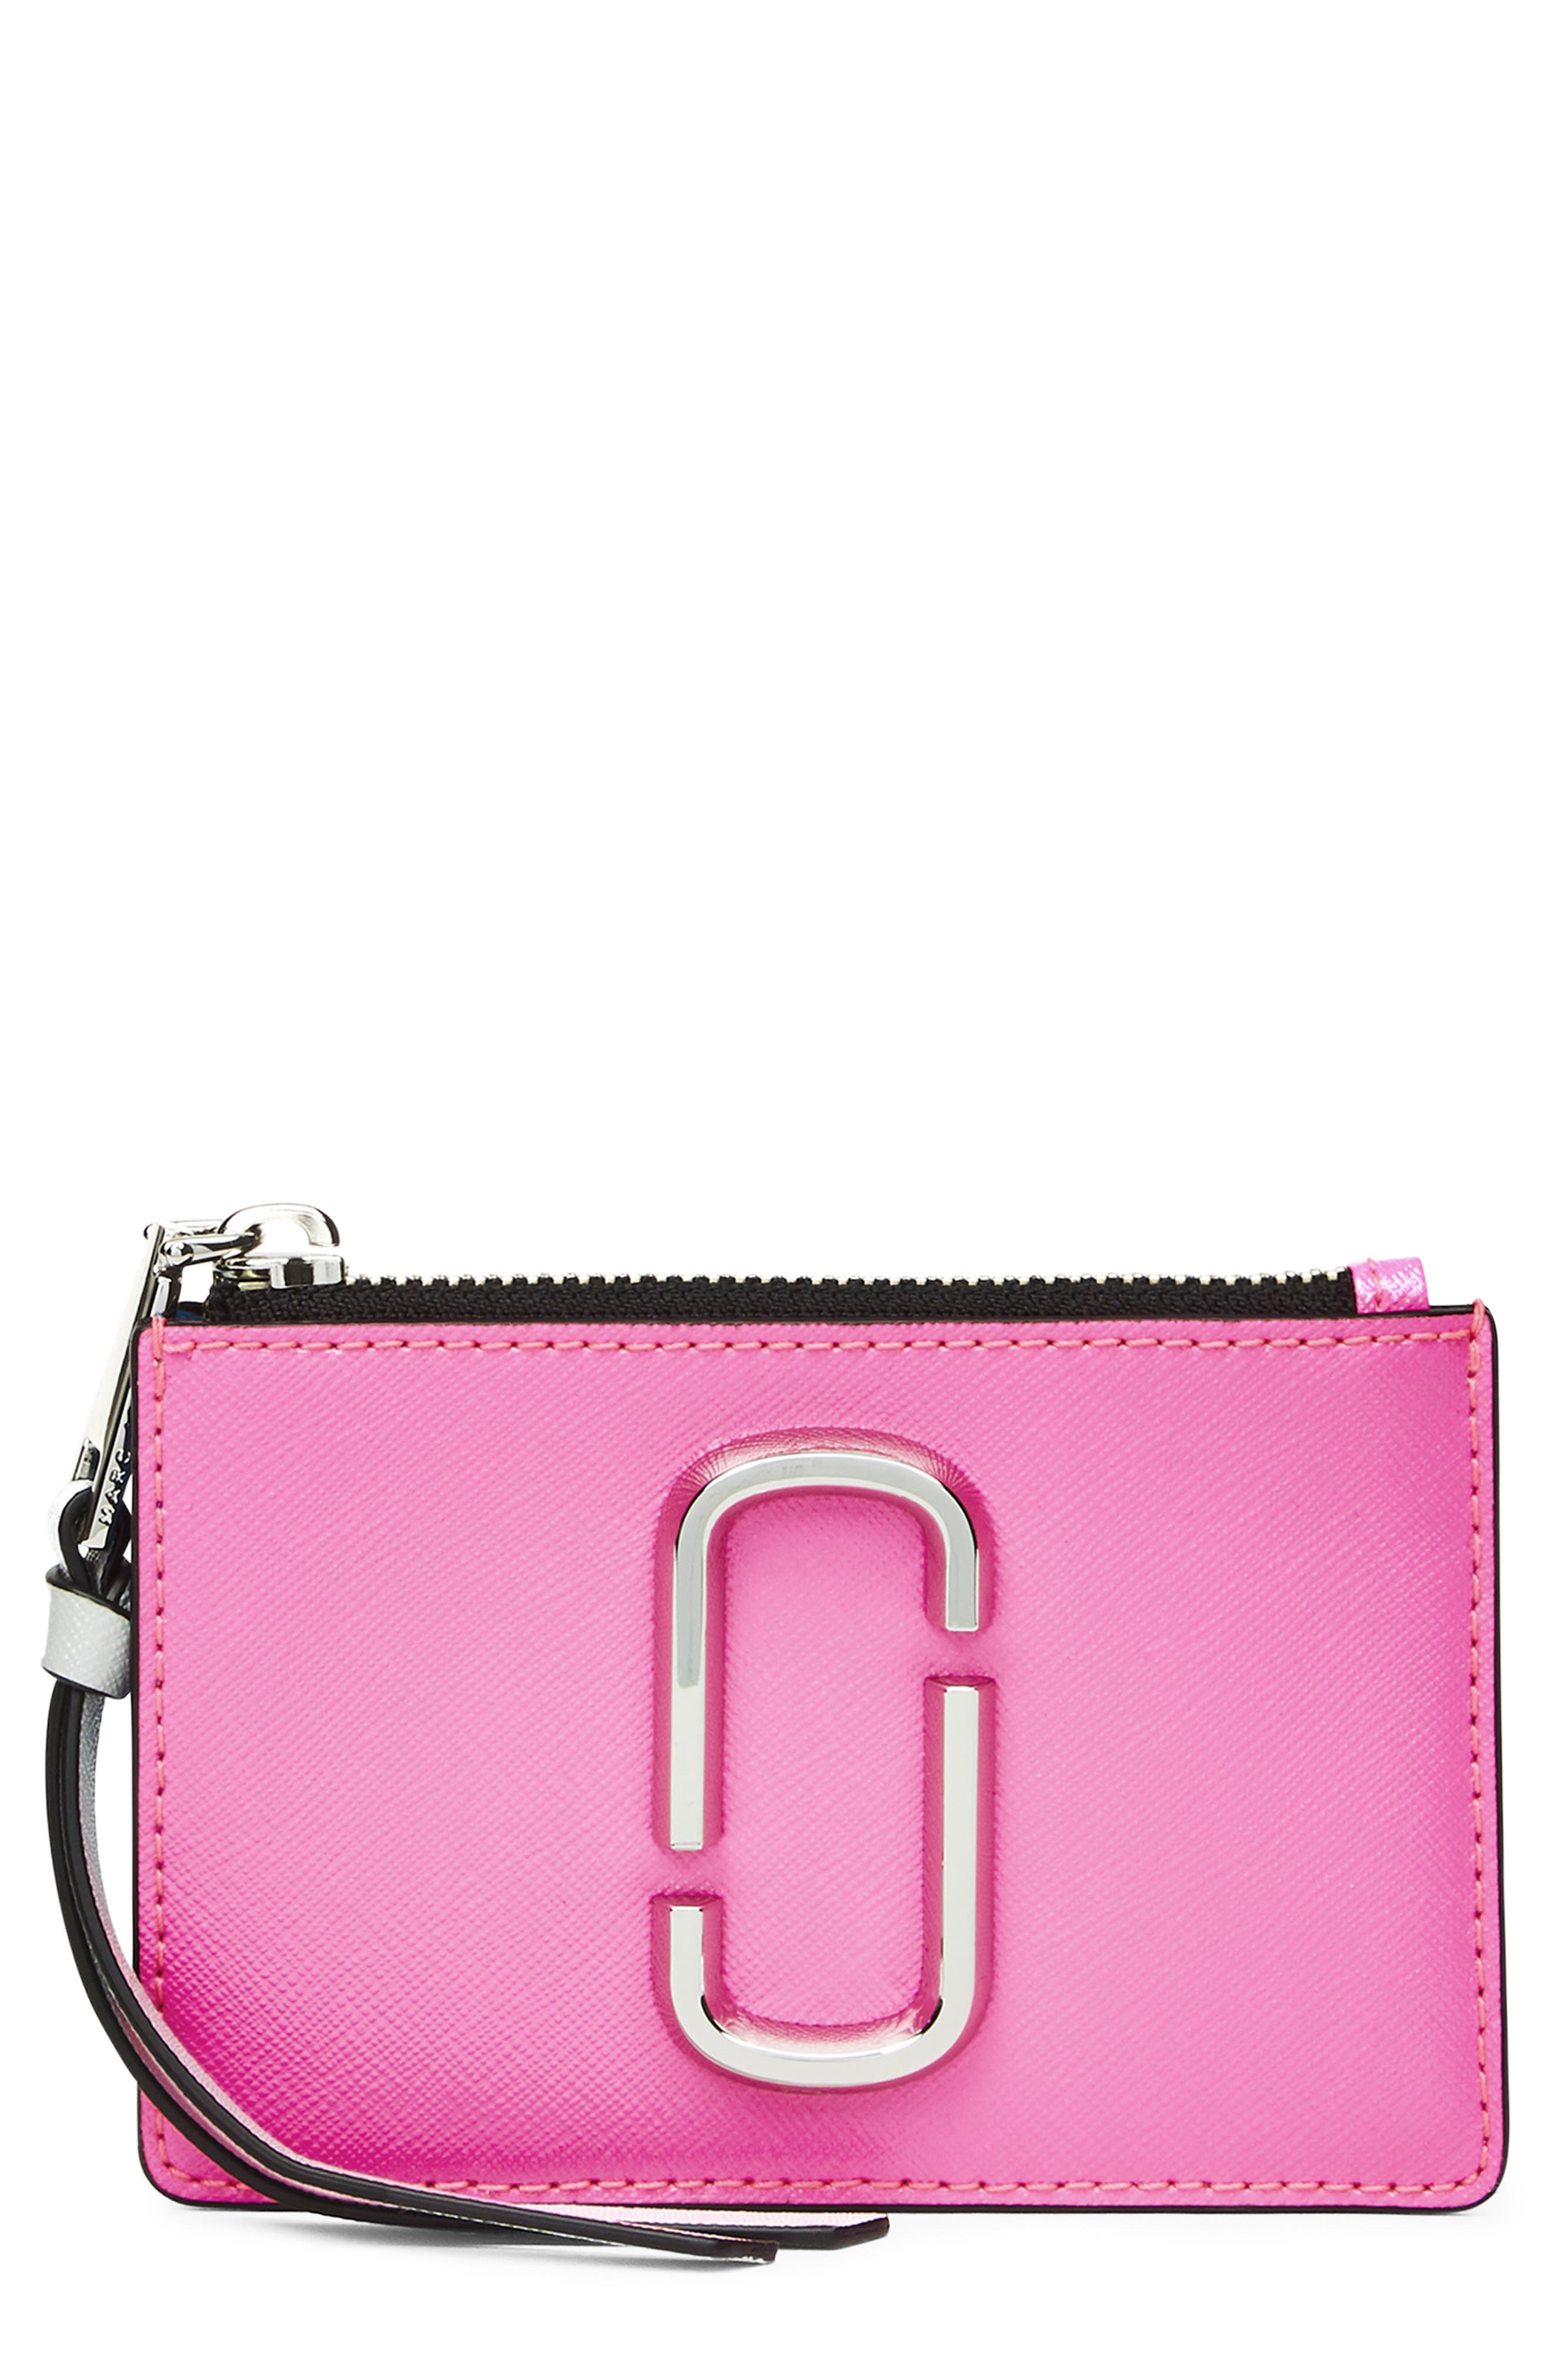 Snapshot Small Leather Wallet, Main, color, BRIGHT PINK MULTI